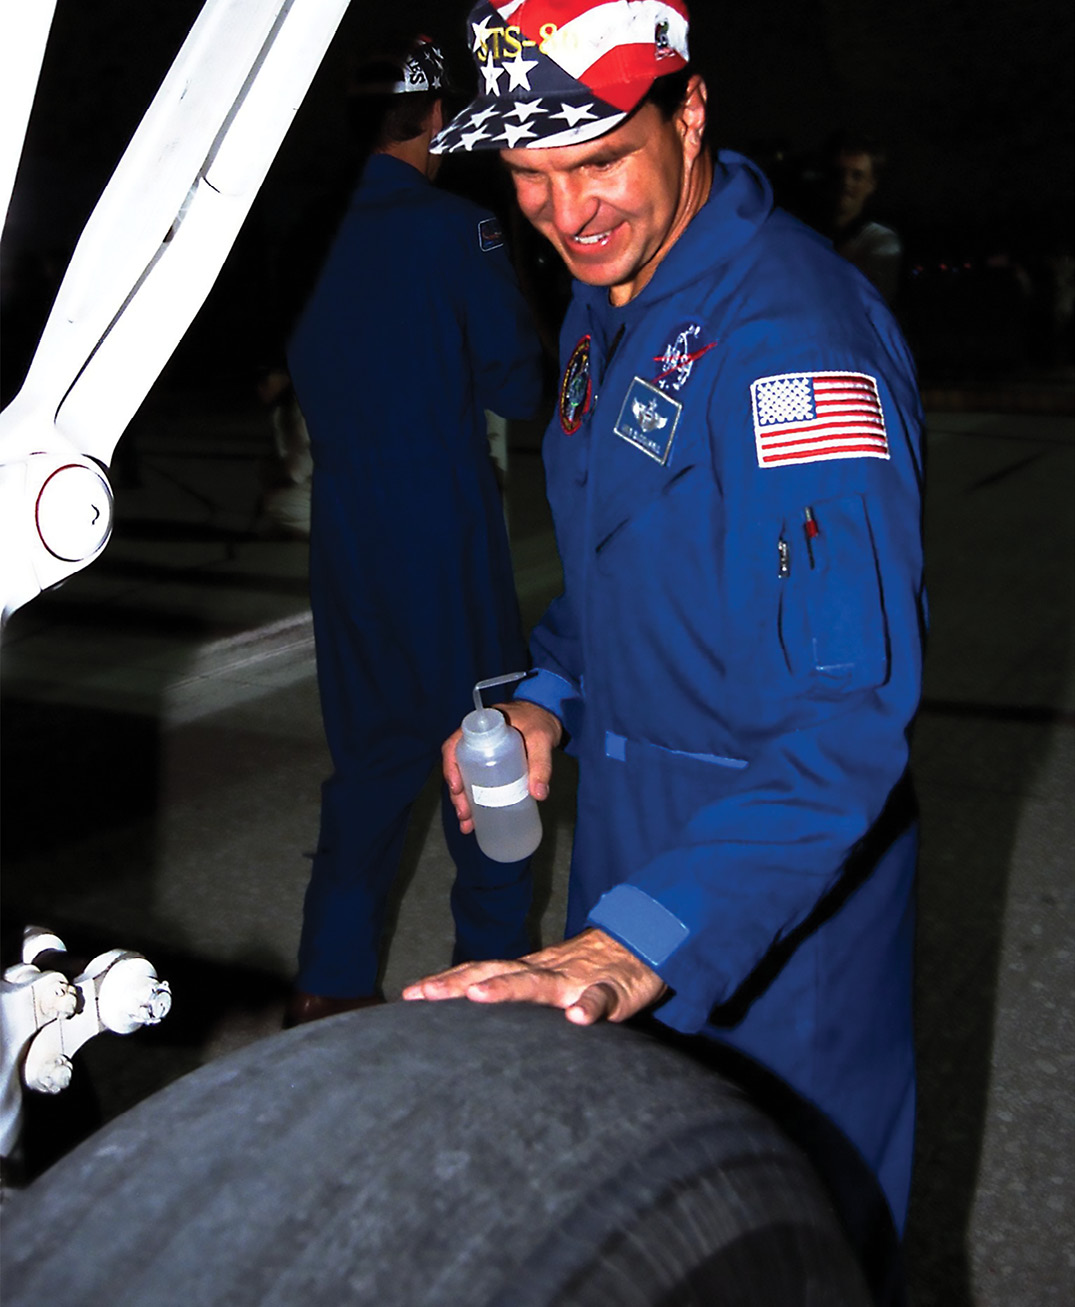 Astronaut Michael Bloomfield inspects a Space Shuttle tire